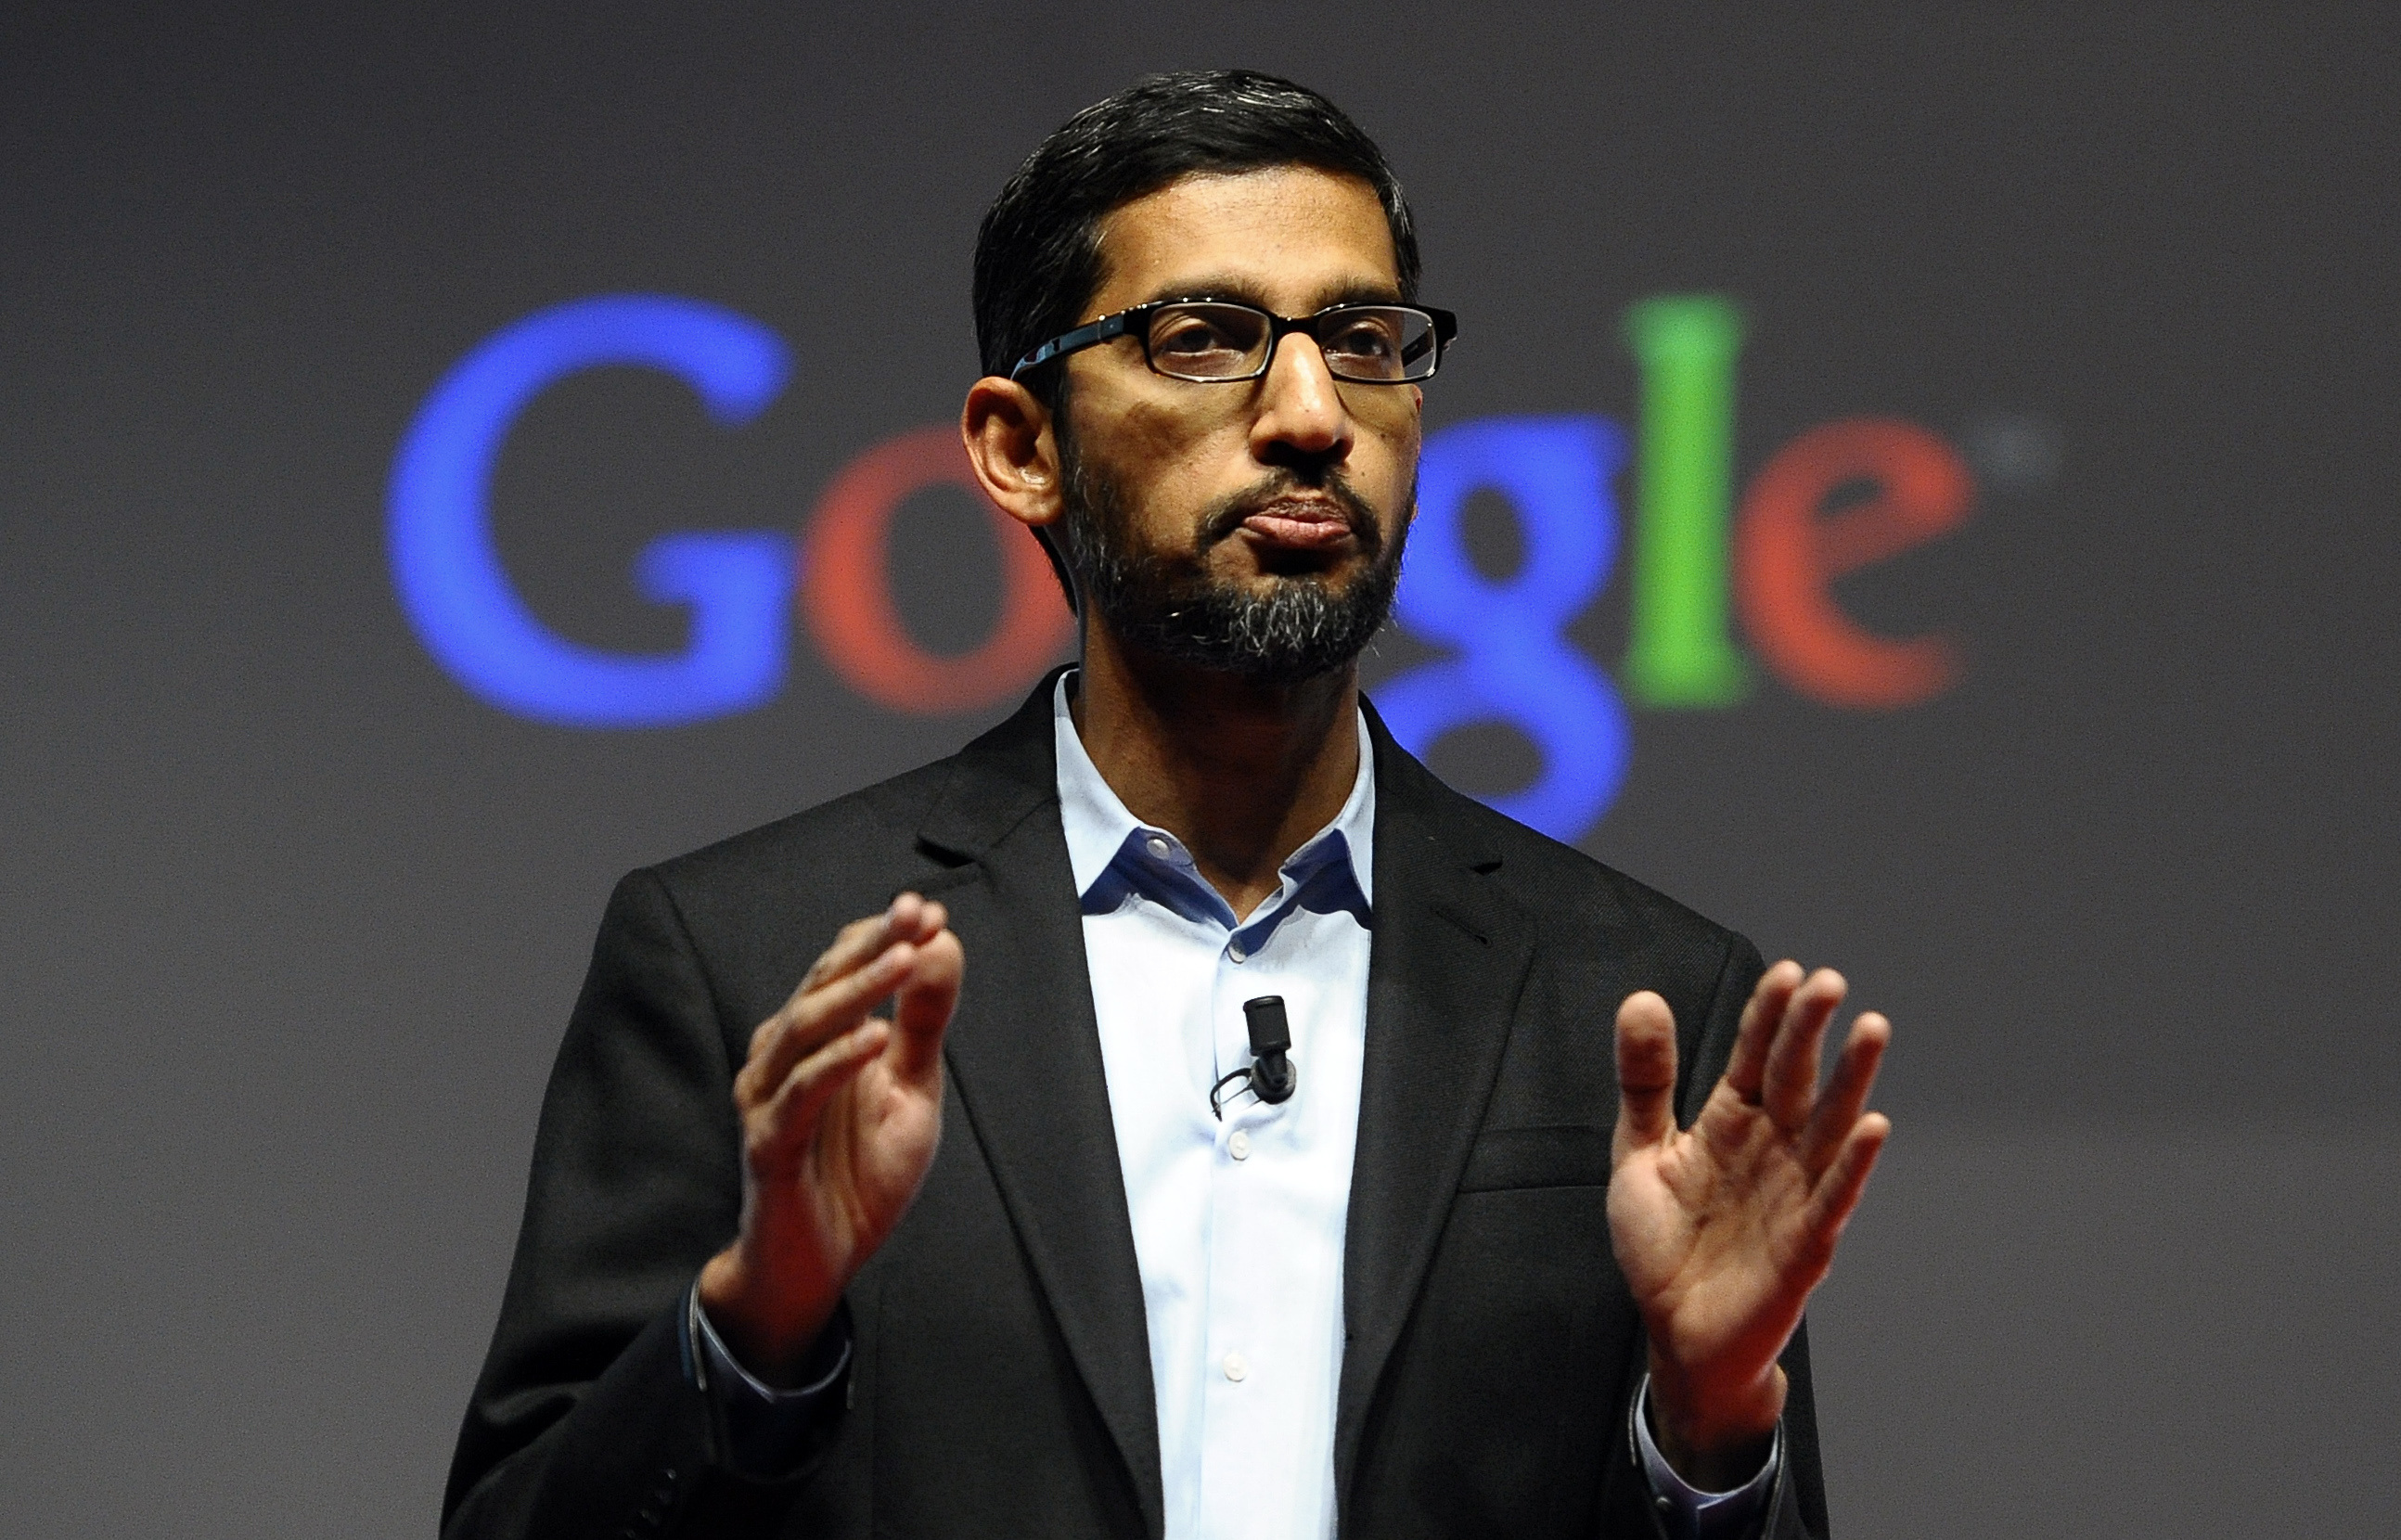 Sundar Pichai defends Tim Cook in FBI decision